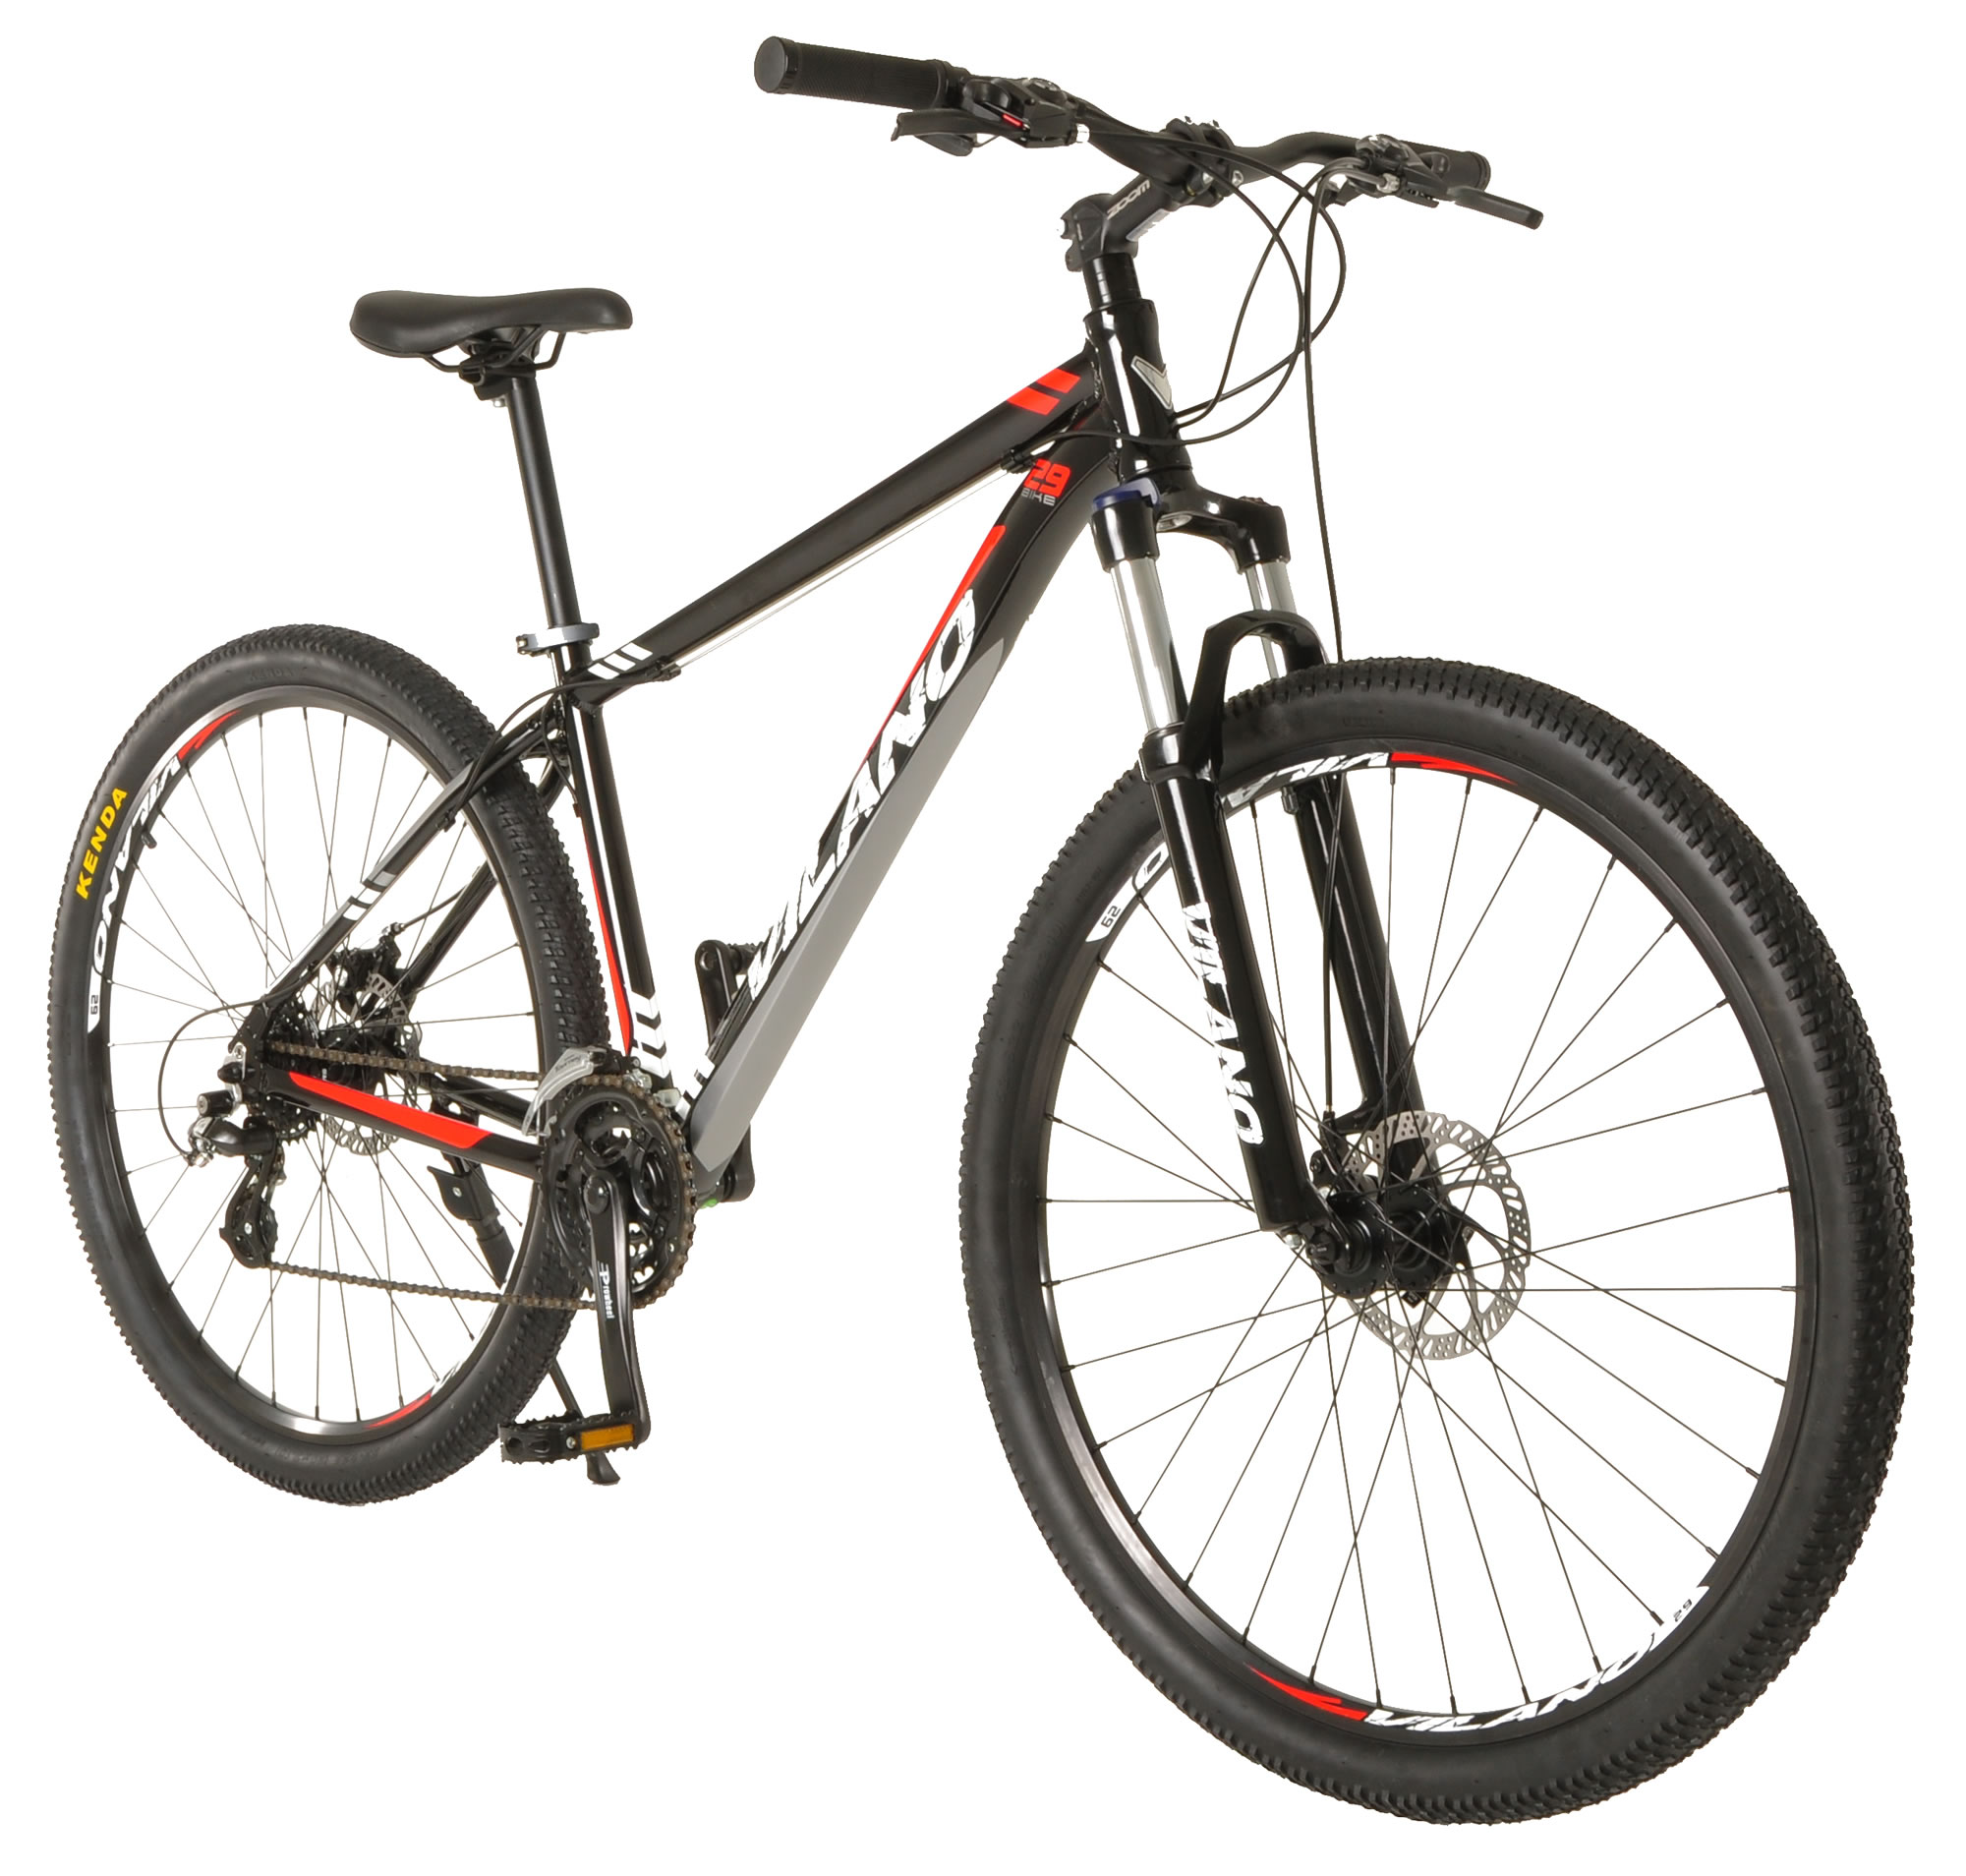 Vilano Blackjack 3 0 29er Mountain Bike Mtb With 29 Inch Wheels